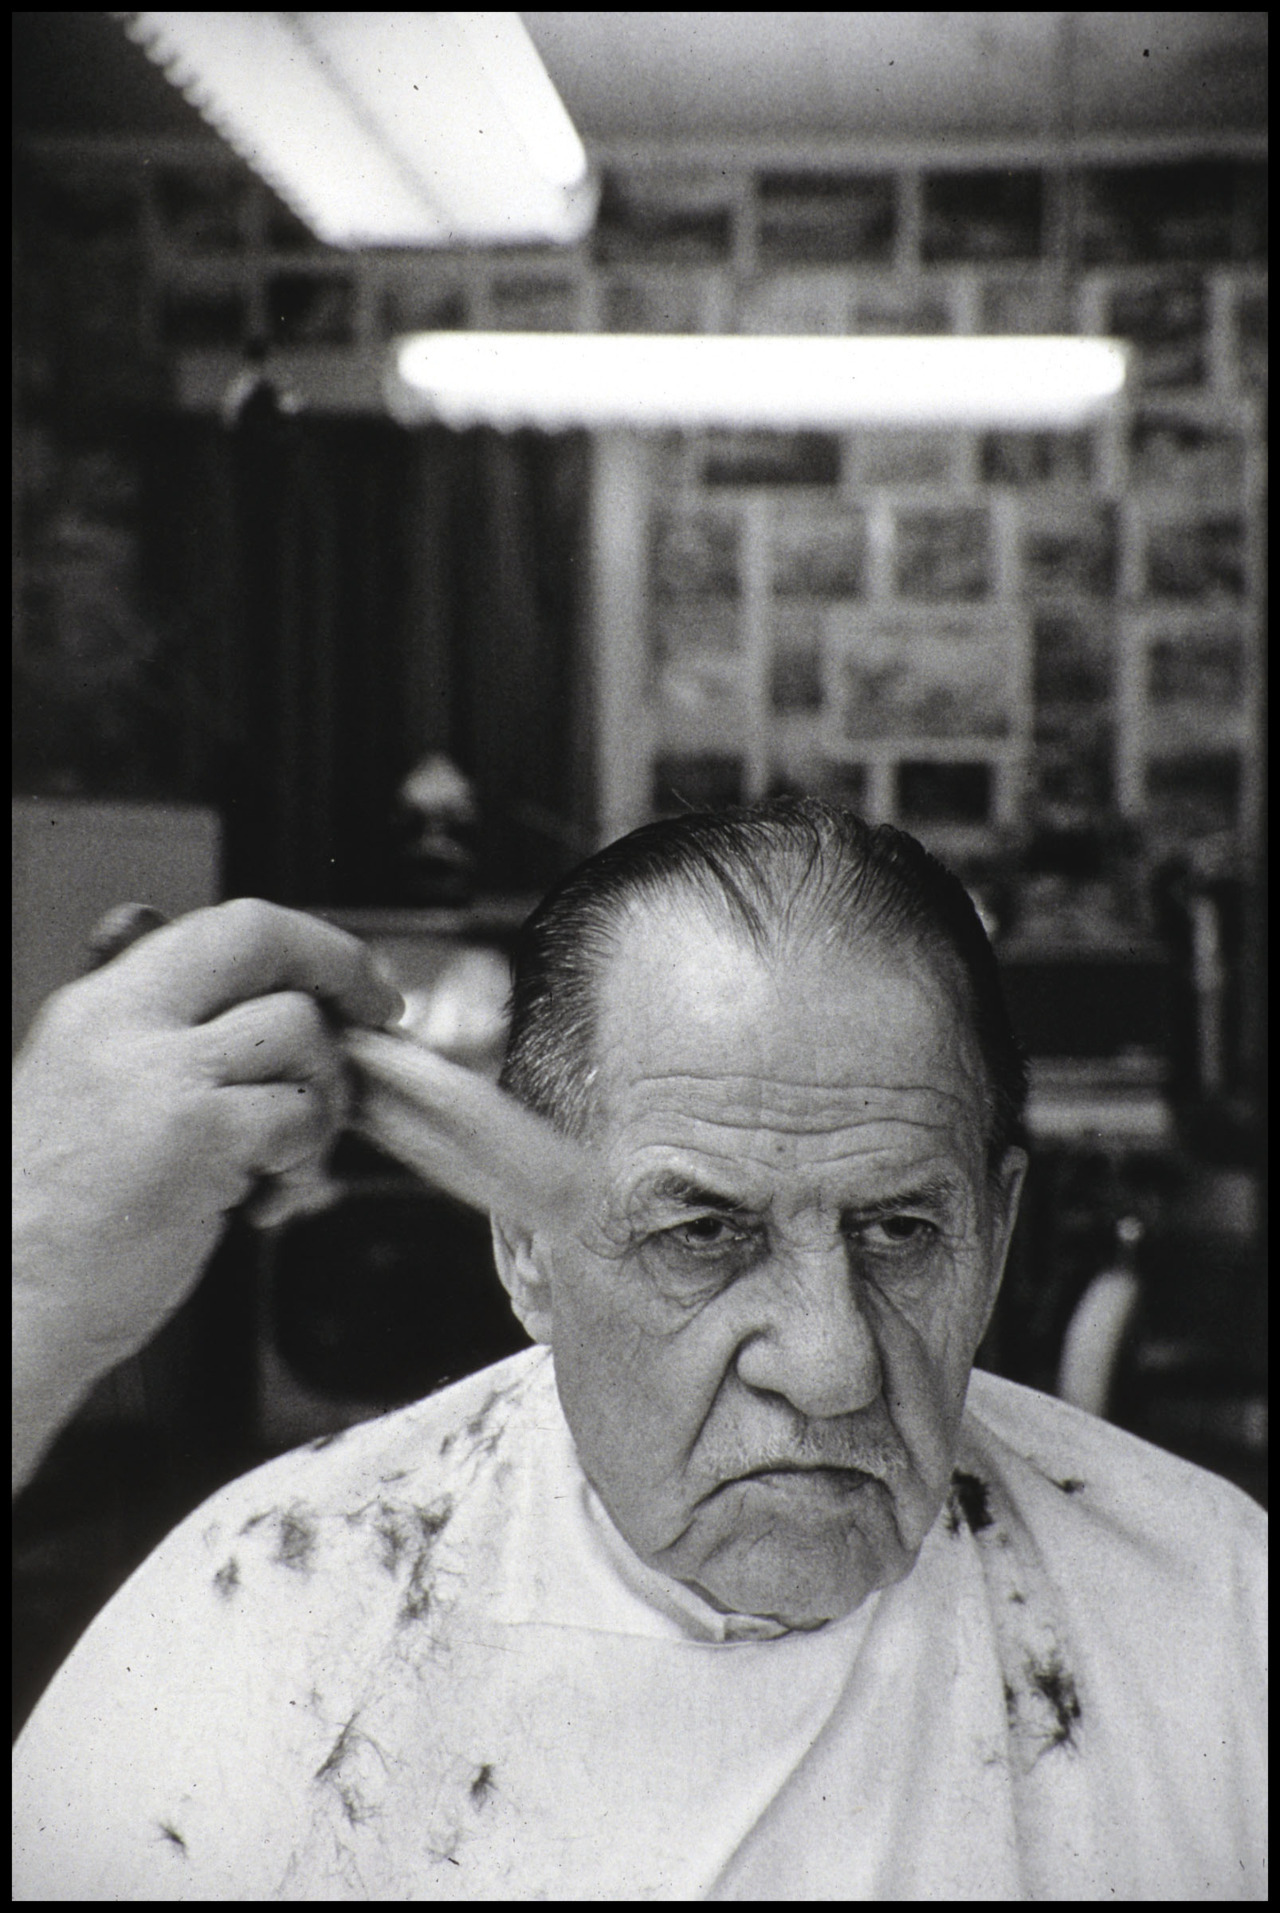 From the Archive - Joe's Barber Shop, St. Paul, MNFrogtown (1993 - 1995) I first started coming here in the 30s when I was 16. It was called Nick's Barber Shop then. Haircuts were 35 cents. Now they're $7.50. Still a good buy. Joe here has been cutting my hair since 1950. I've been a good customer. I get it cut every three weeks. If you can stand his bs you've got it made. That's a lot of bs over 40 years. I guess that's why I come here.